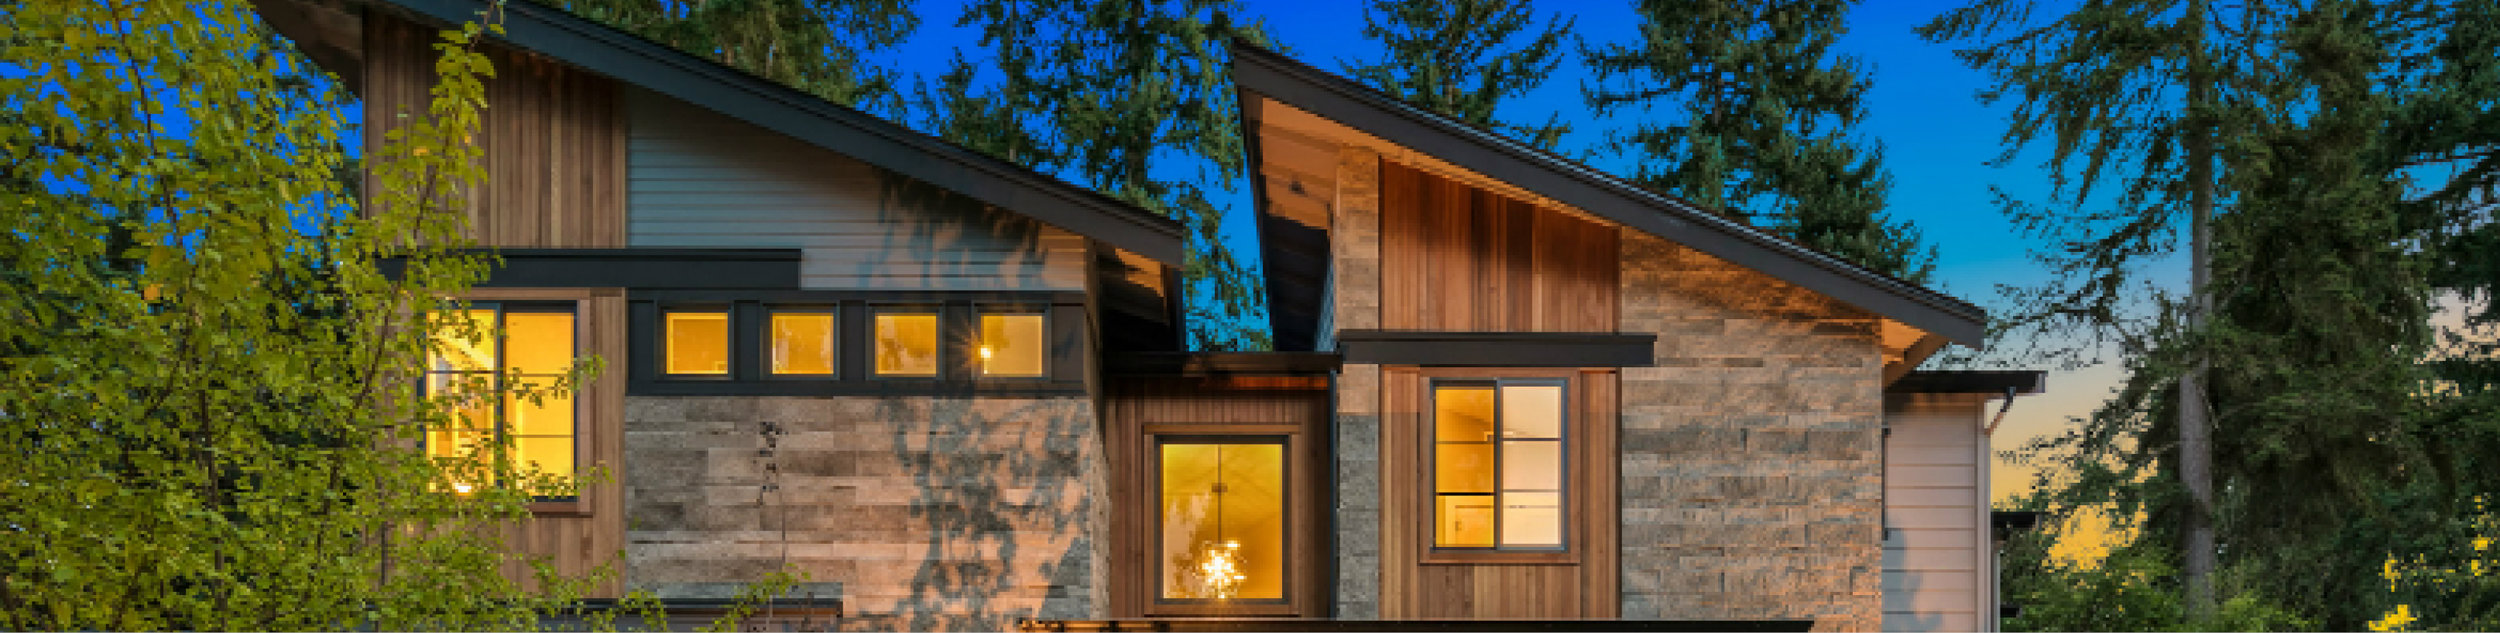 10 Home Design Trends Making a Statement in Seattle  - By Marc Rousso